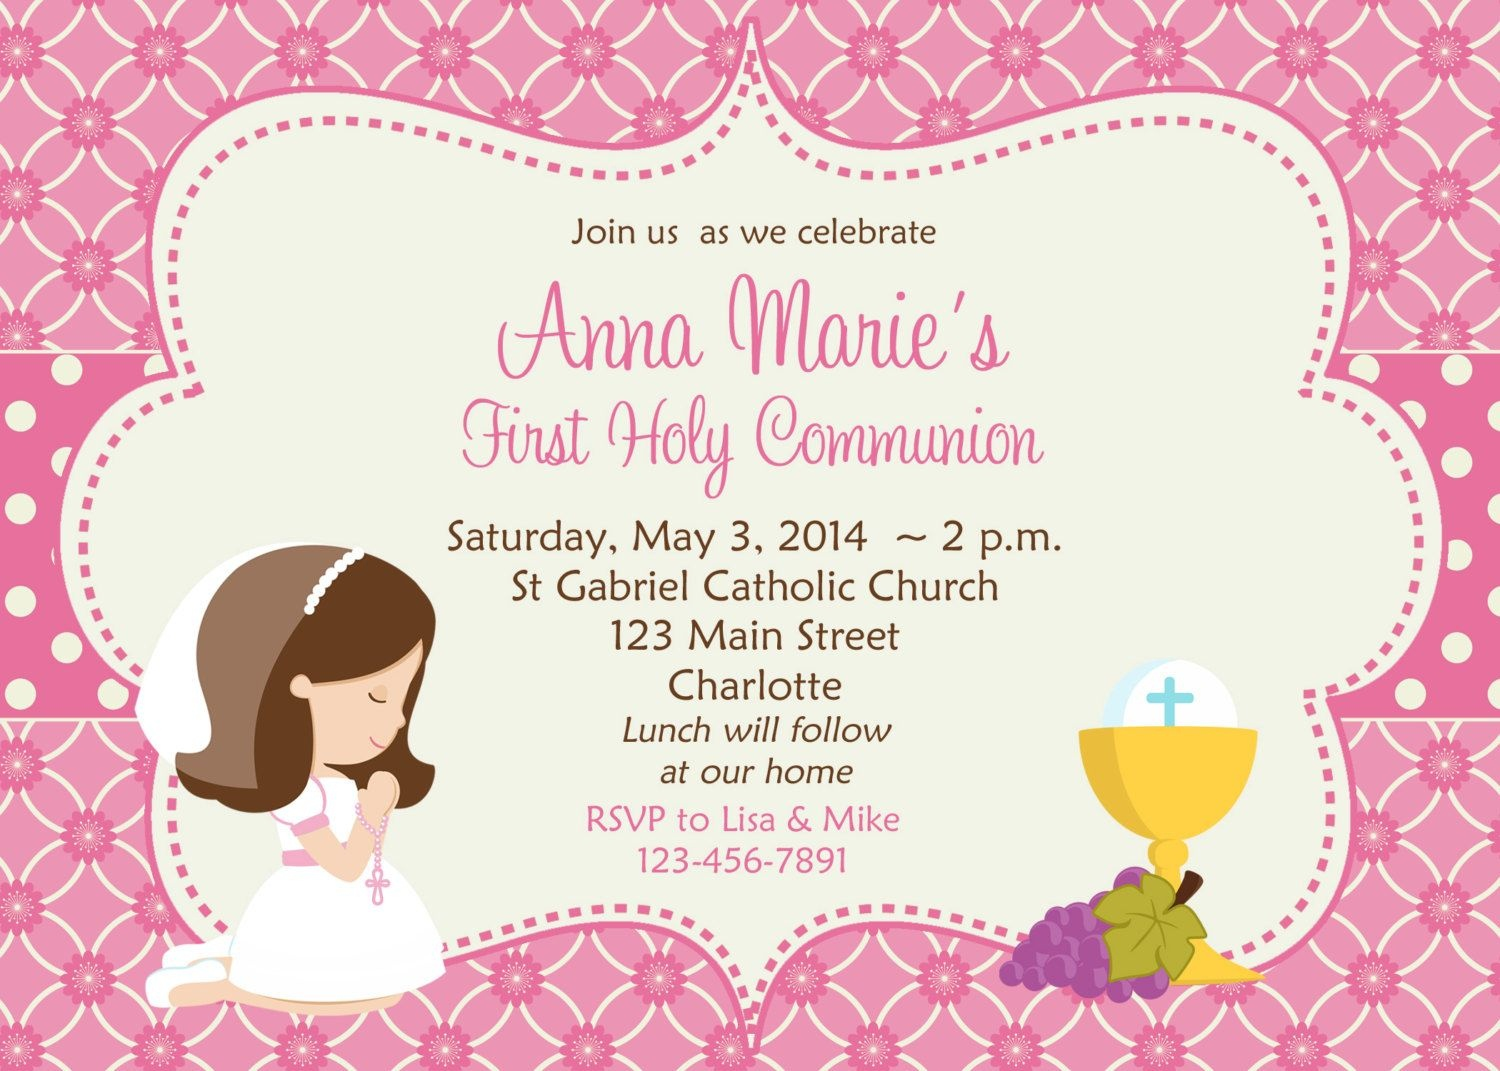 First Holy Communion Invitation Cards Free | Amber's Communion Ideas - First Holy Communion Cards Printable Free